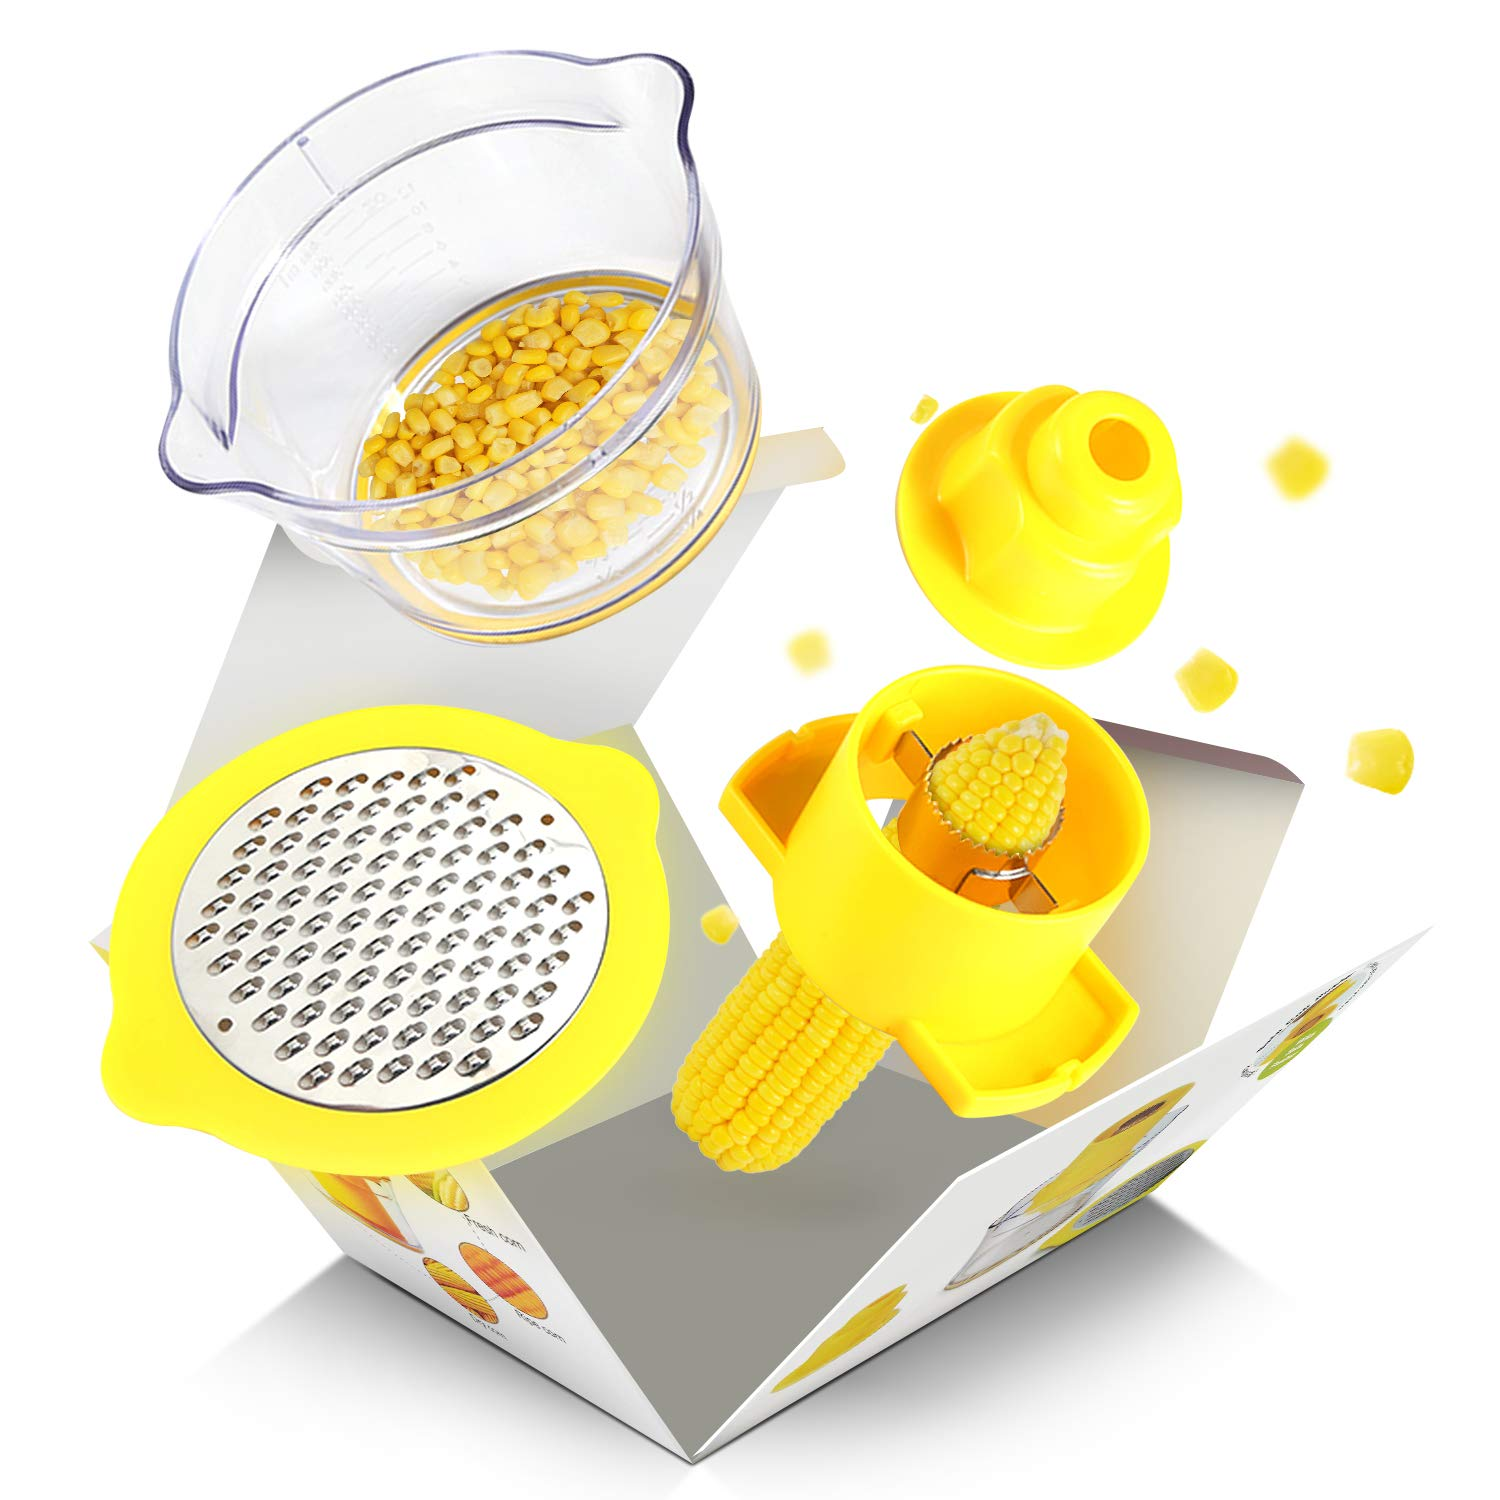 Houselog Corn Stripper,Corn Peeler Household Corn Thresher Stainless Steel Peeling Machine 4 in 1 Corn Shucker Tool + Kitchen Multifunctional Peeler (Gift)